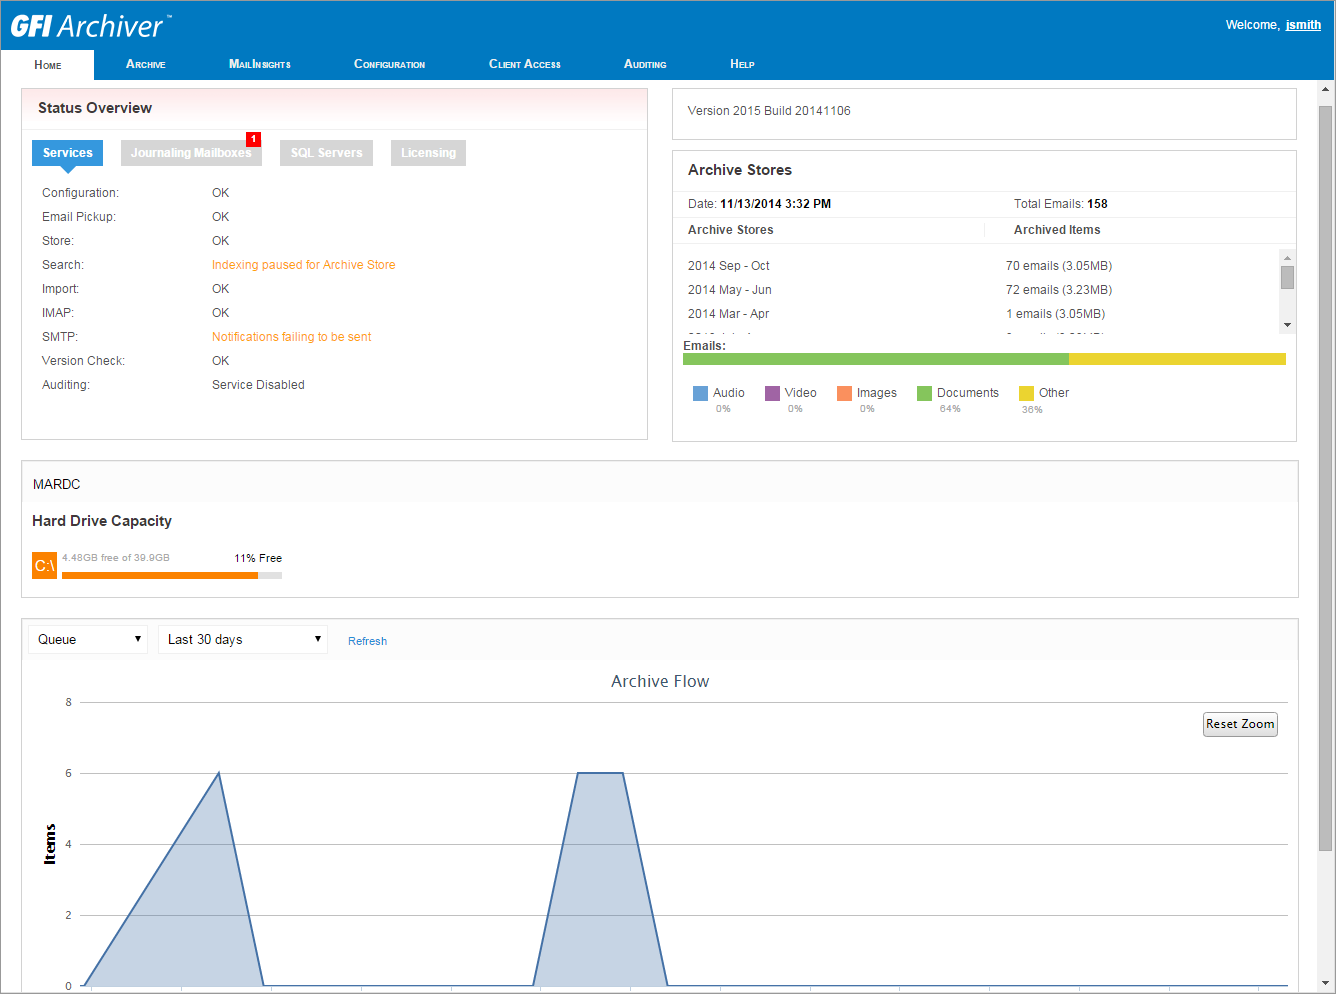 Monitor operations from the dashboard